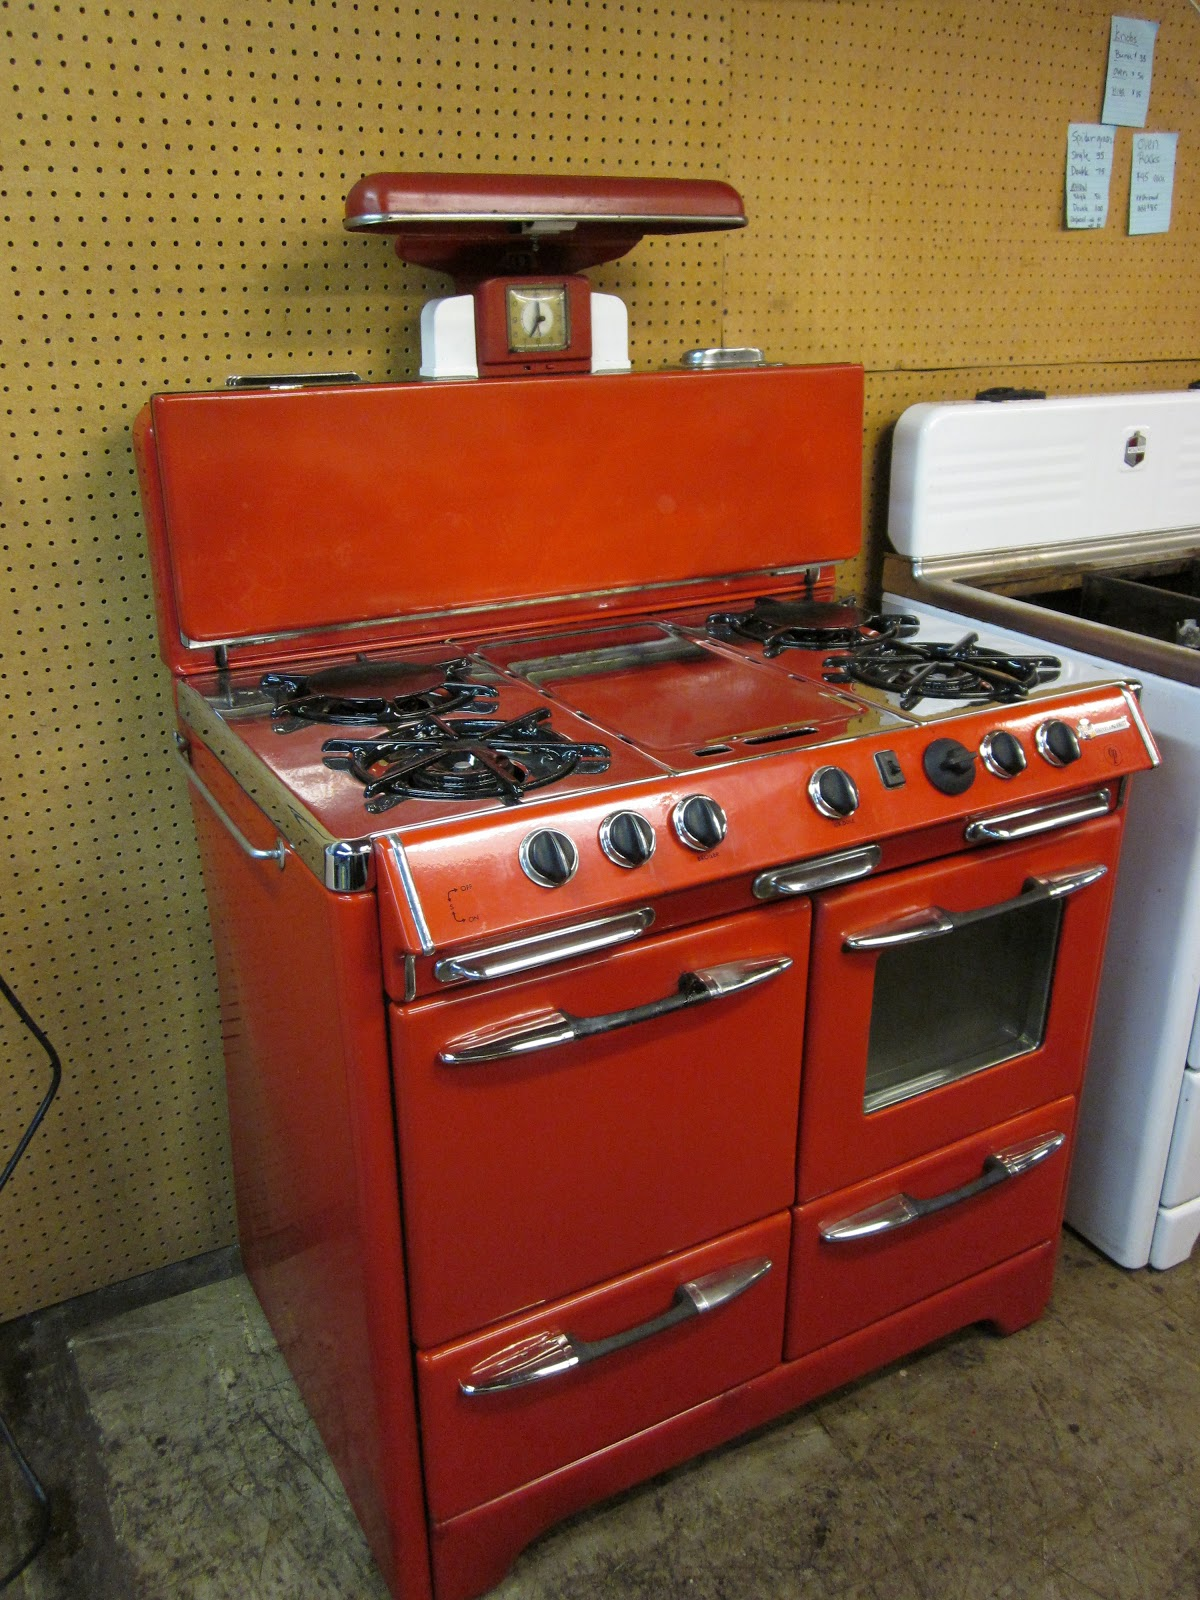 Rescuing antique stoves one at a time: New red O'keefe & Merritt